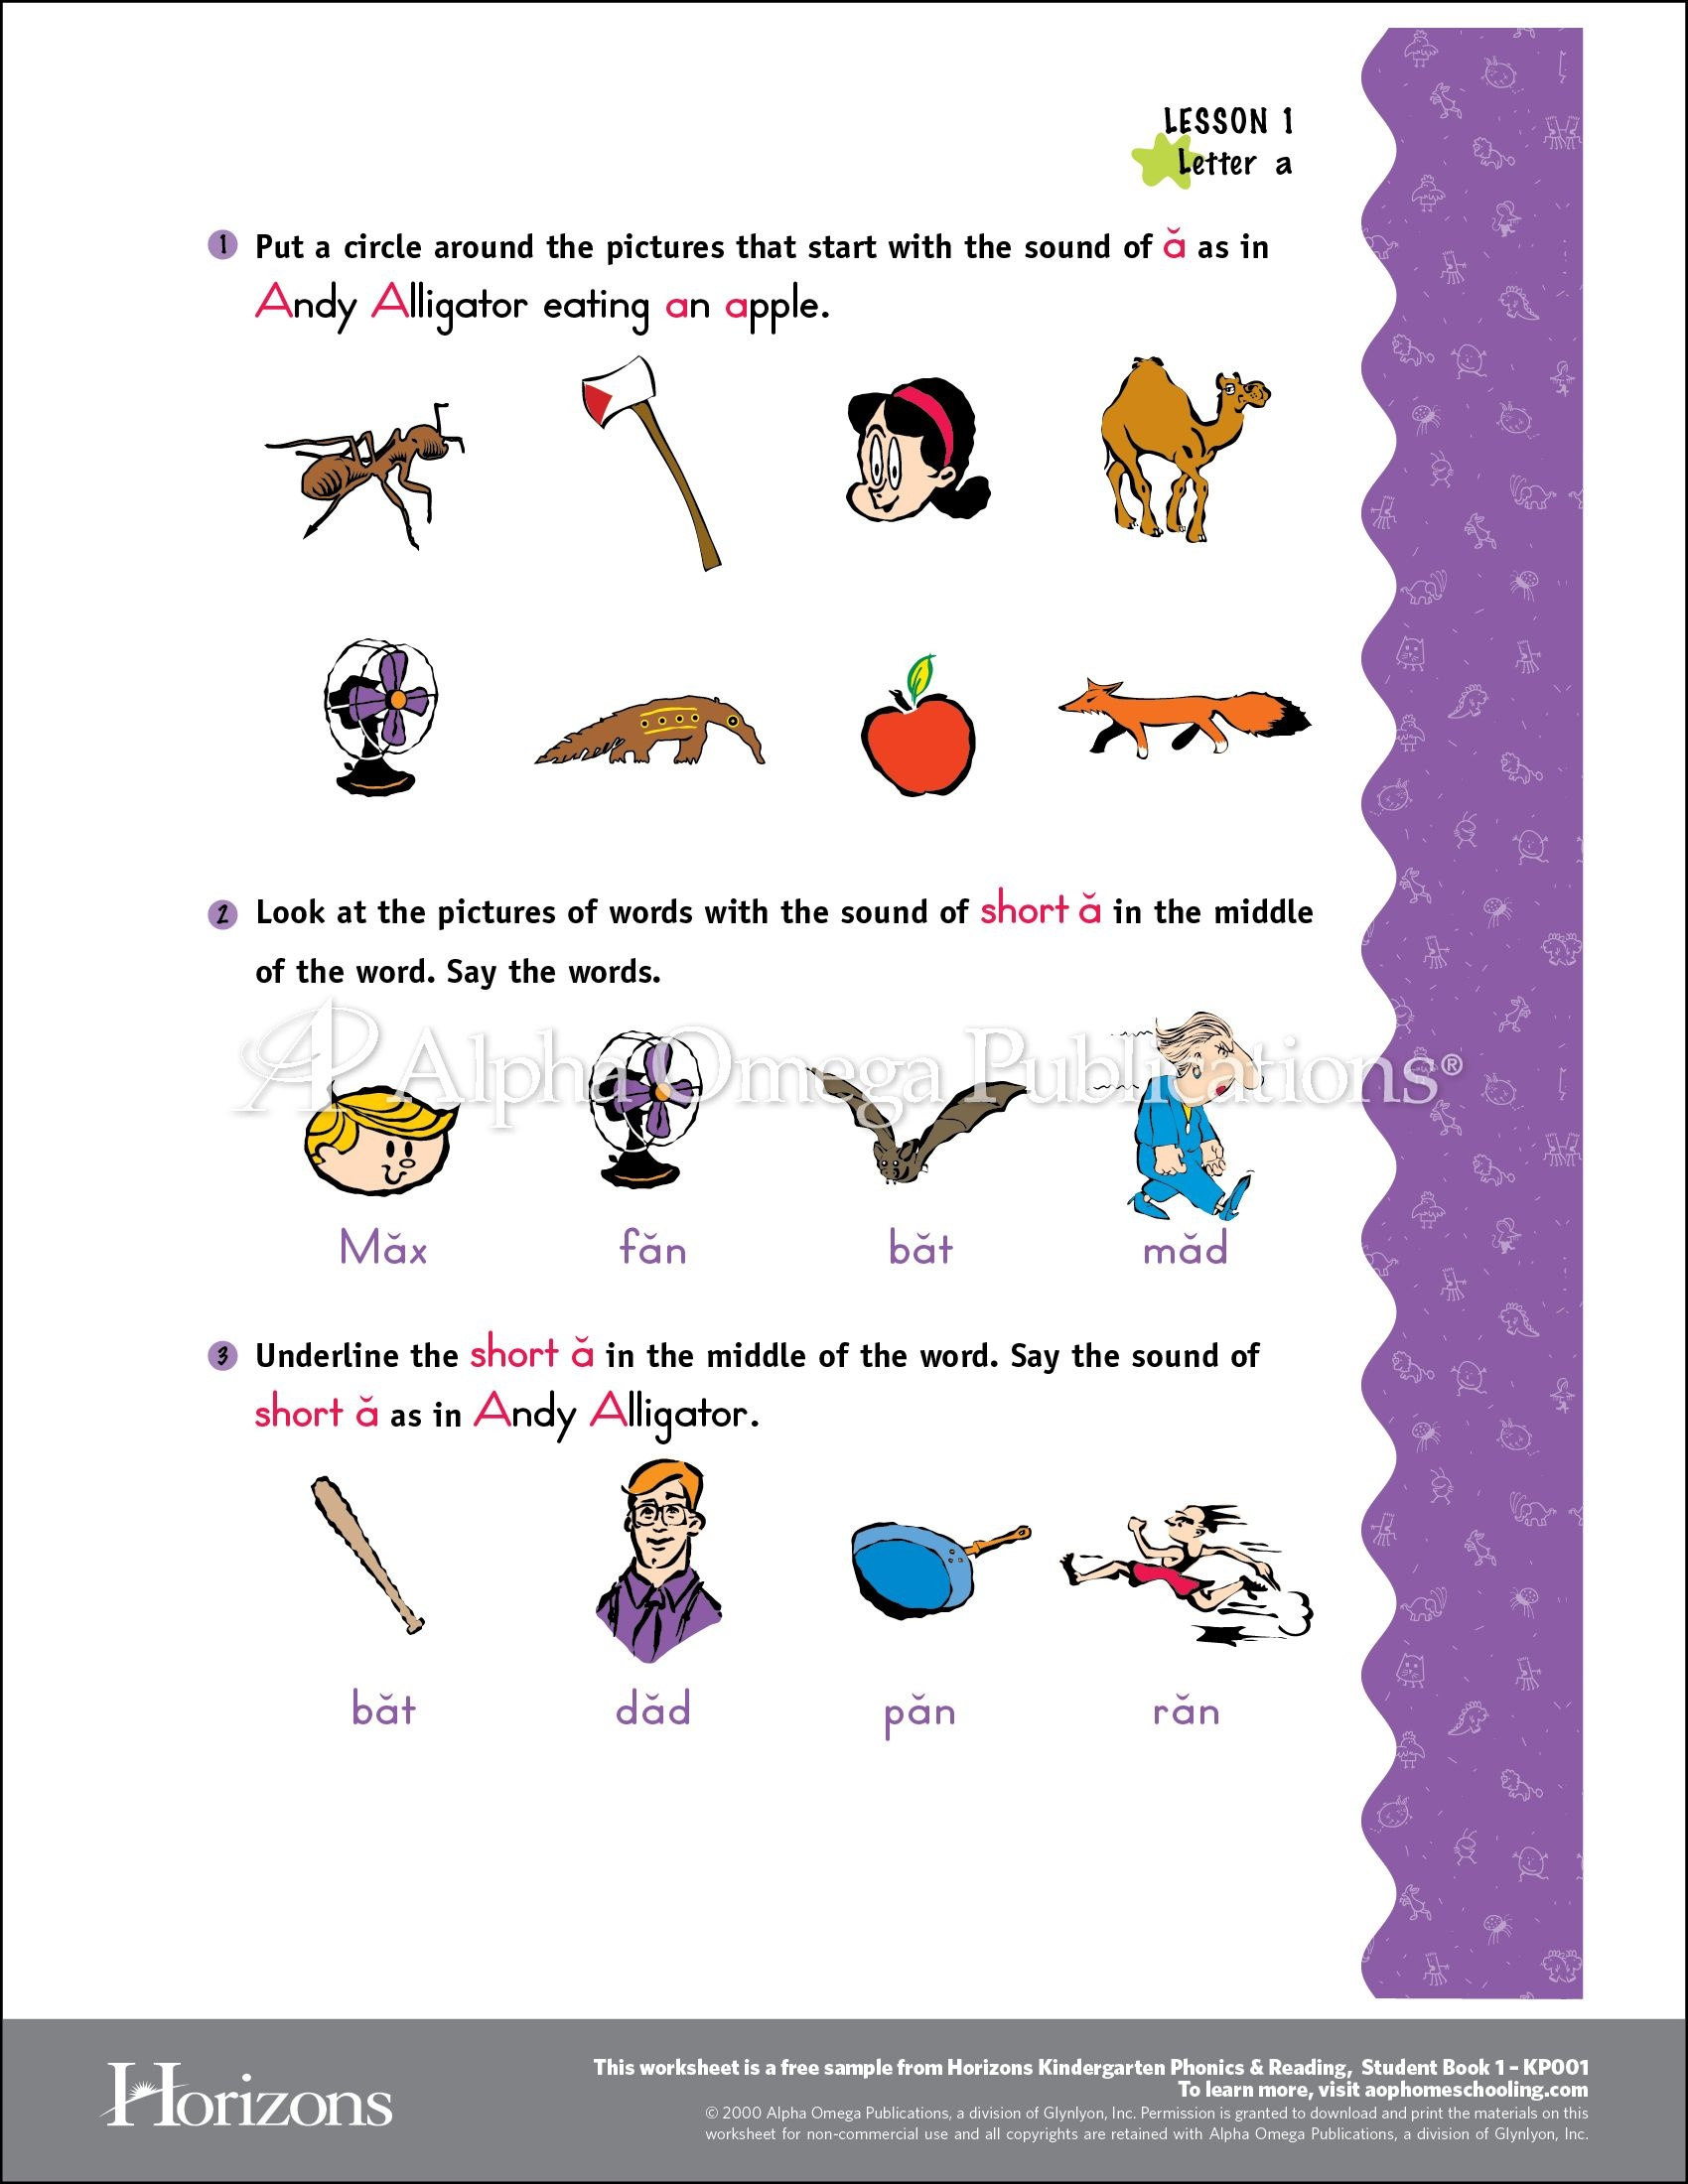 Aop Horizons Free Printable Worksheet Sample Page Download For - Free Phonics Readers Printable